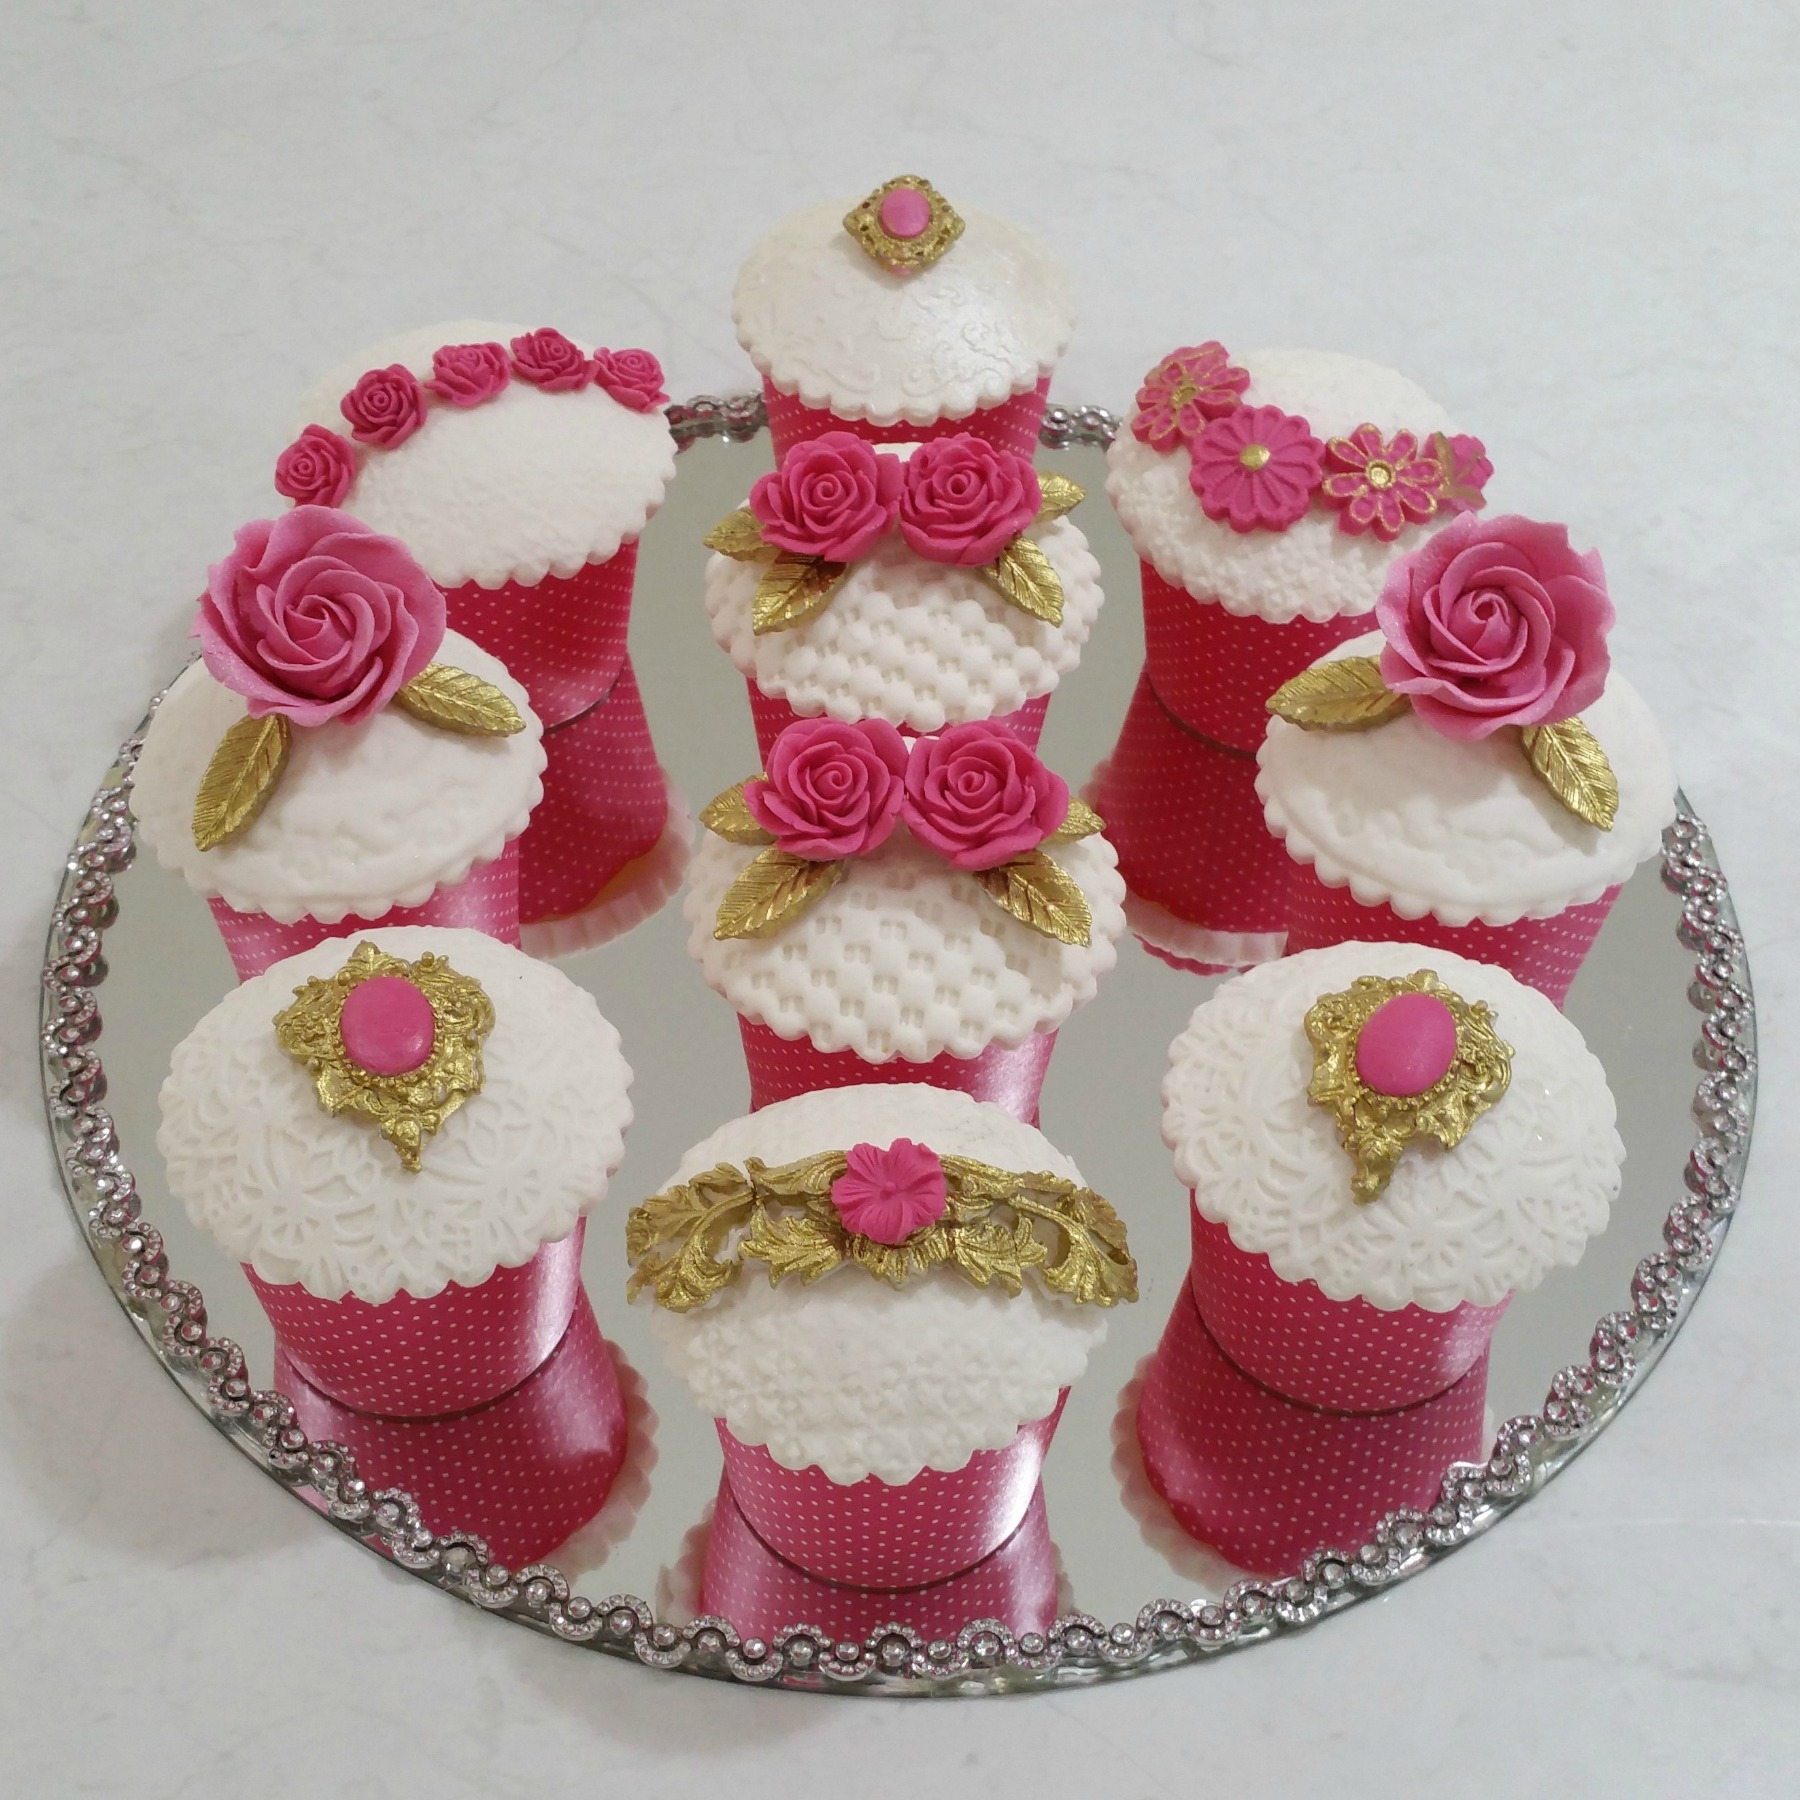 Pink and Gold Baroque Cupcakes